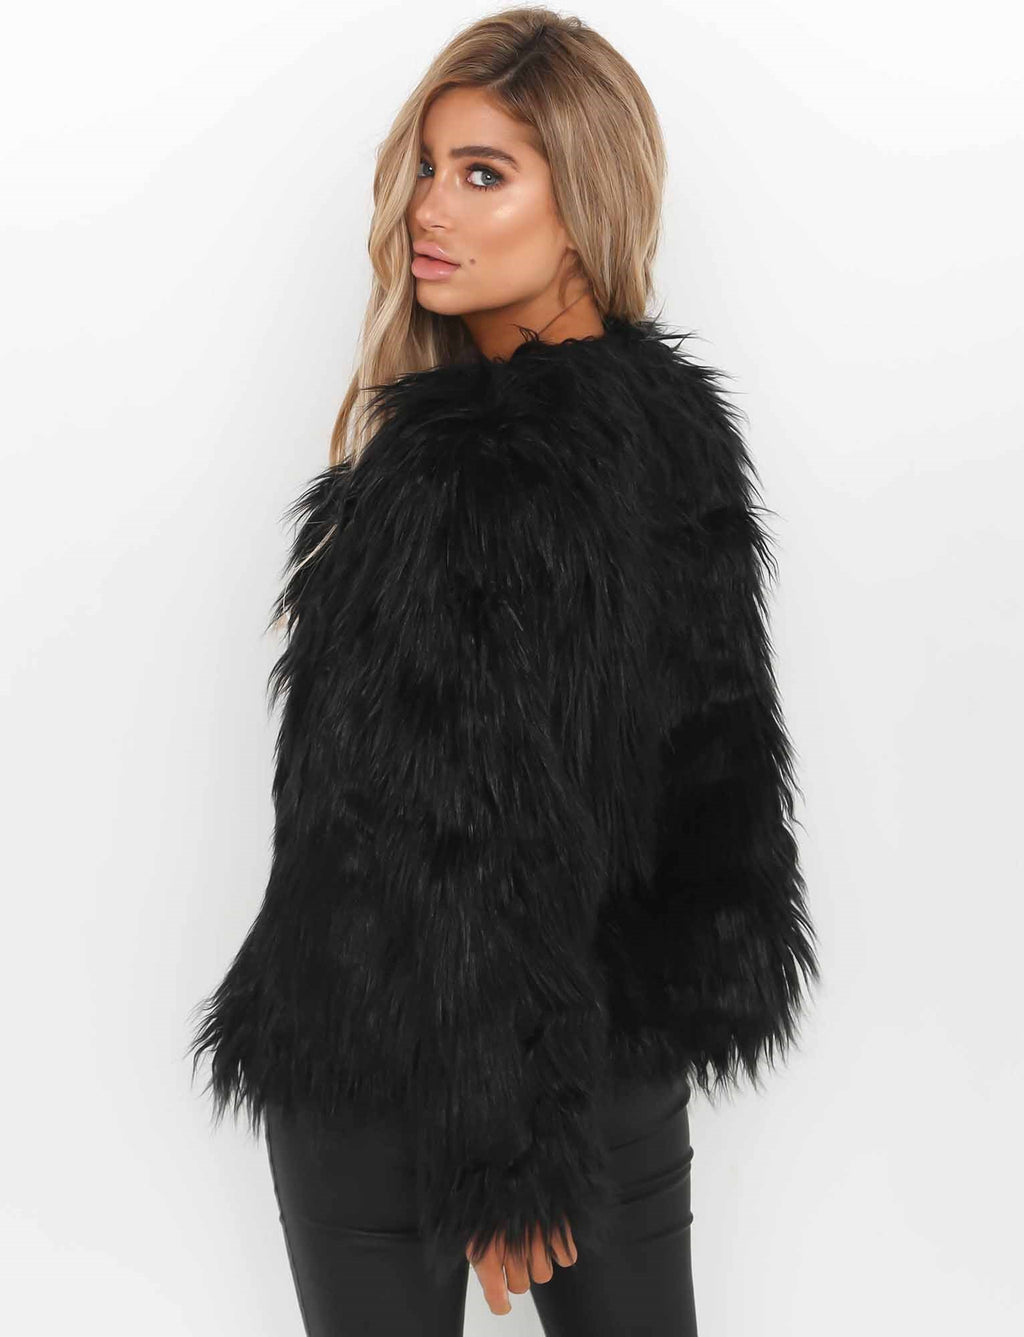 Our women's faux-fur coats offer a variety of styles and colors as well. Cotton, down and leather jackets may be lined for added comfort, and look for options trimmed with fox, rabbit or coyote for a luxe touch.